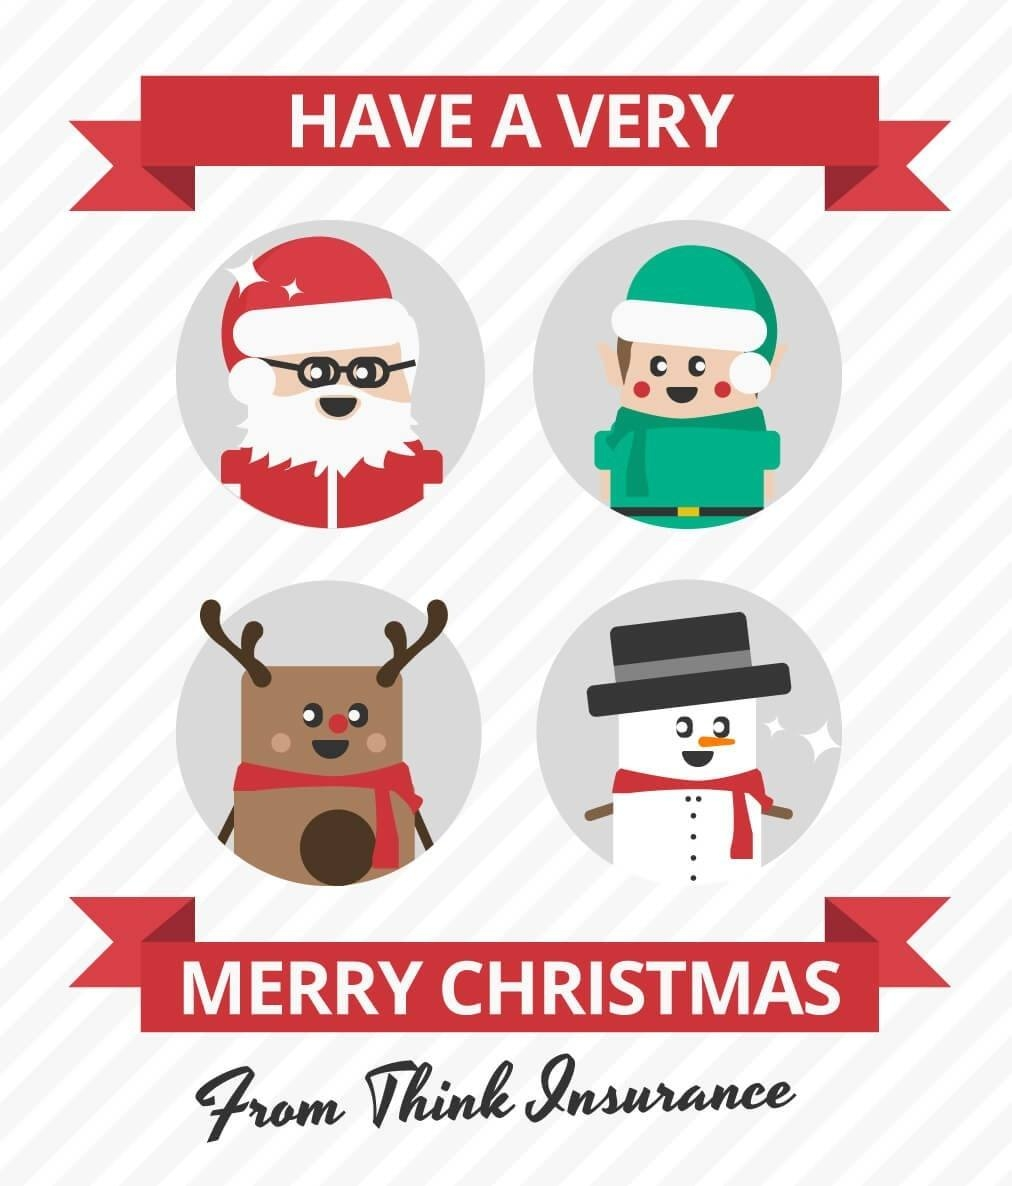 Merry Christmas Card Design